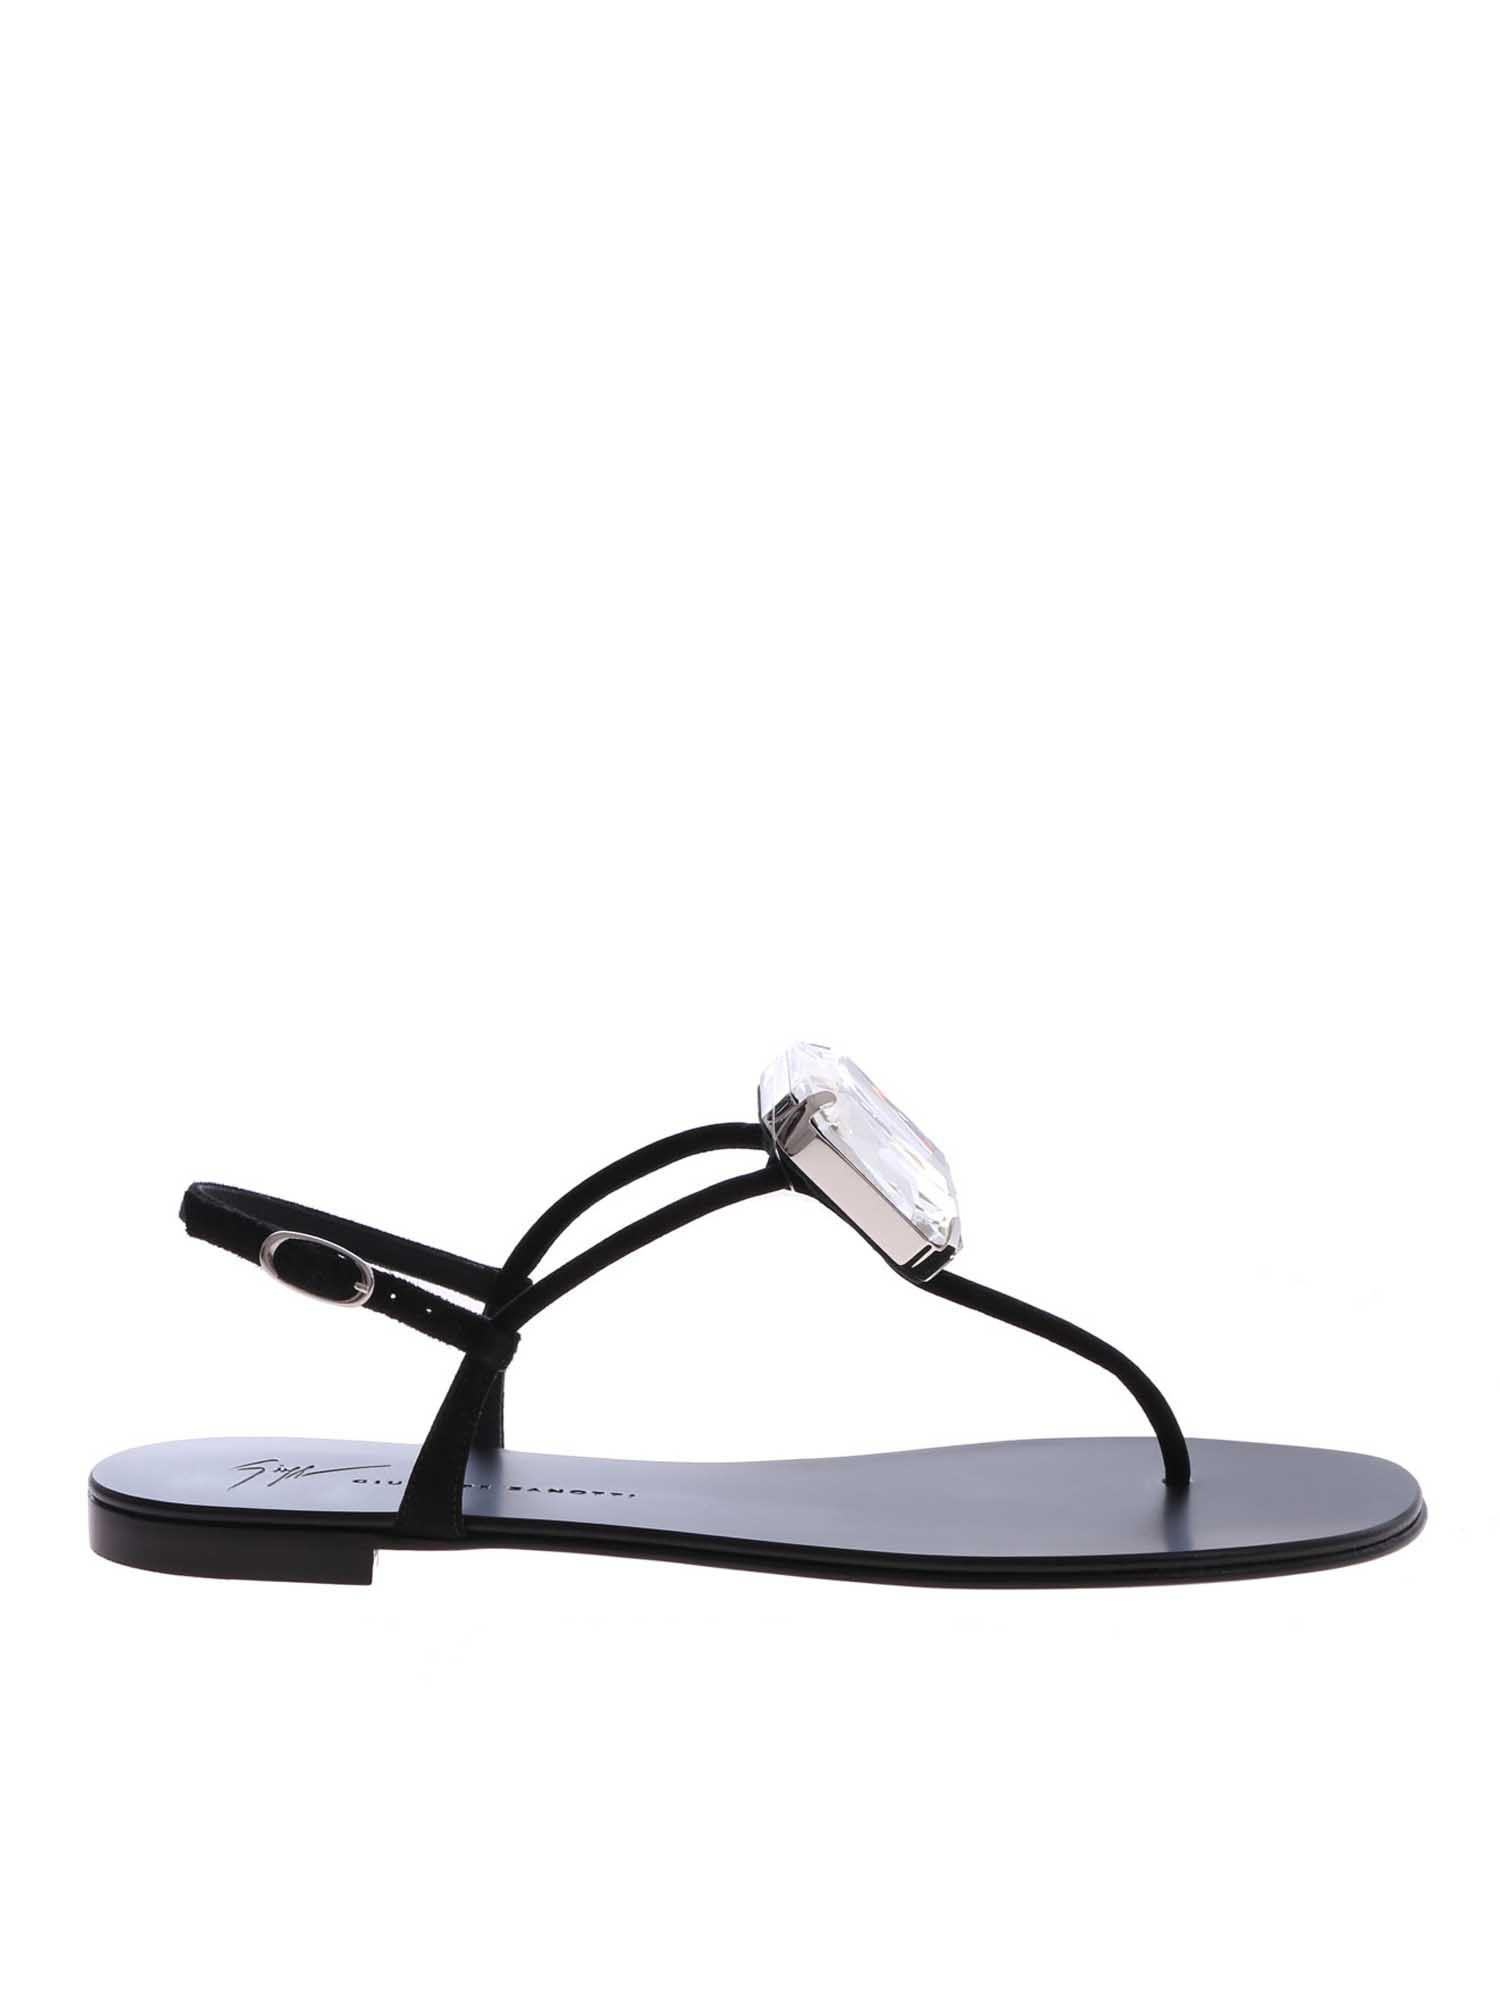 8a6446e01 Giuseppe Zanotti - Black Thong Sandals With Rhinestones - Lyst. View  fullscreen